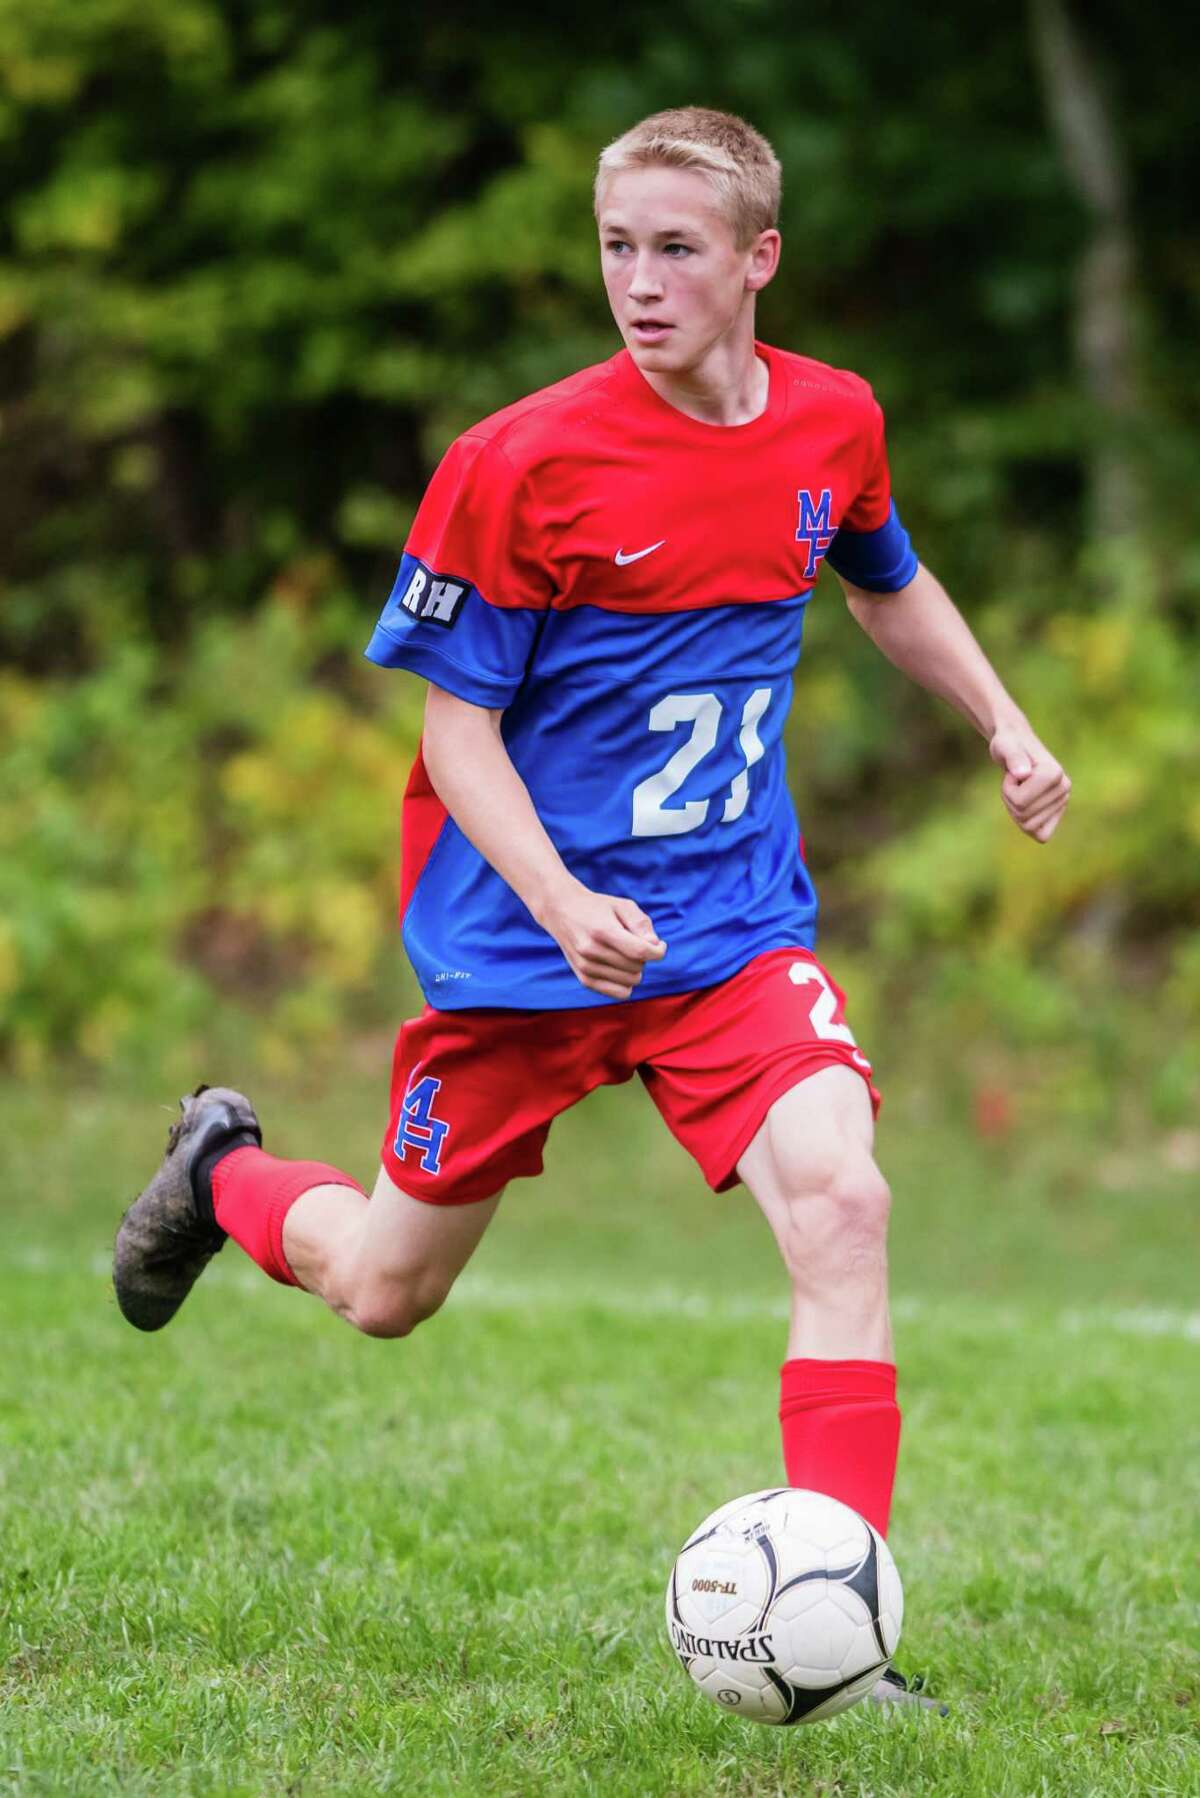 Maple Hill's Rian Jewett handles the ball as Maple Hill faced off against Scotia during the Maple Hill Soccer Tournament at Maple Hill in Schodack, NY Monday, October 8th, 2018. Photo by Eric Jenks